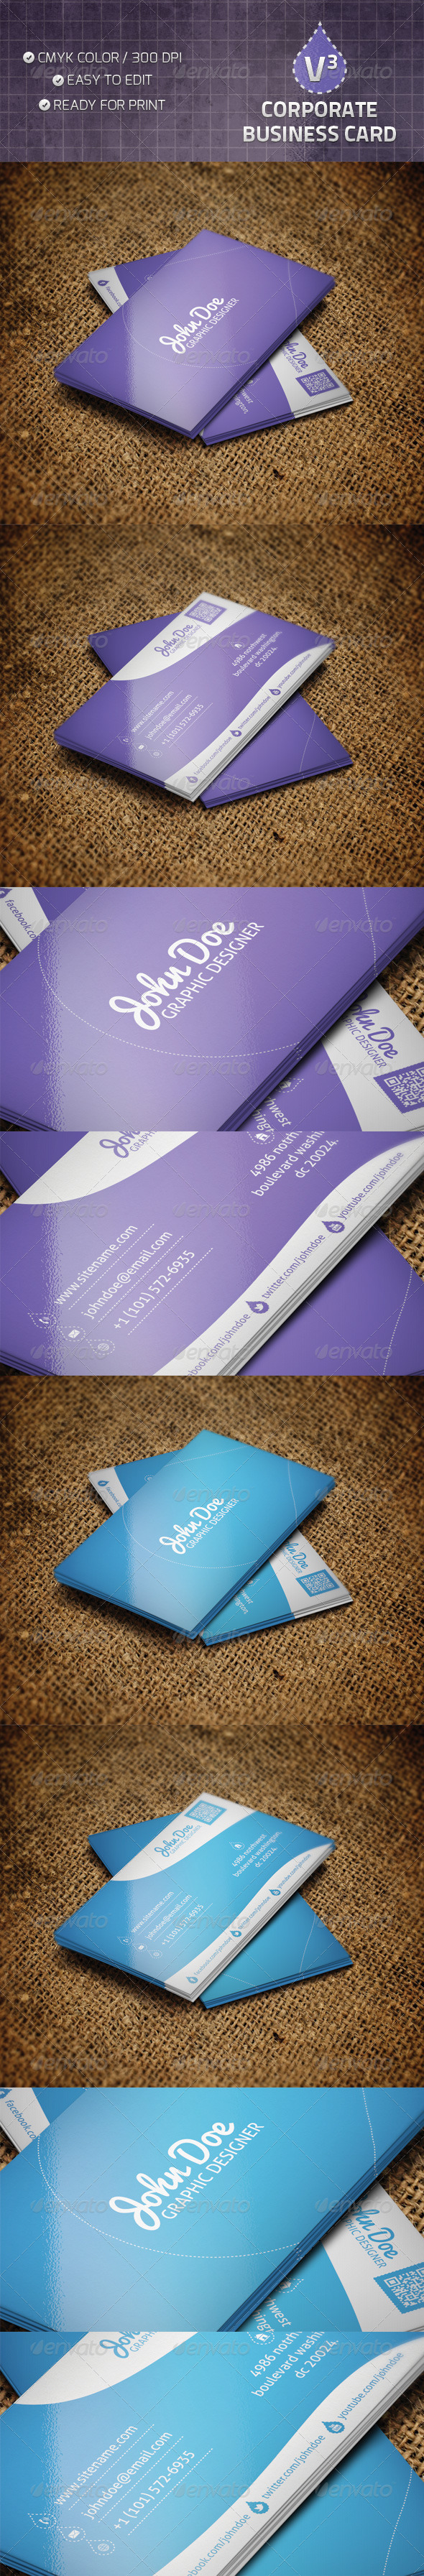 GraphicRiver Corporate Business Card V3 4746824